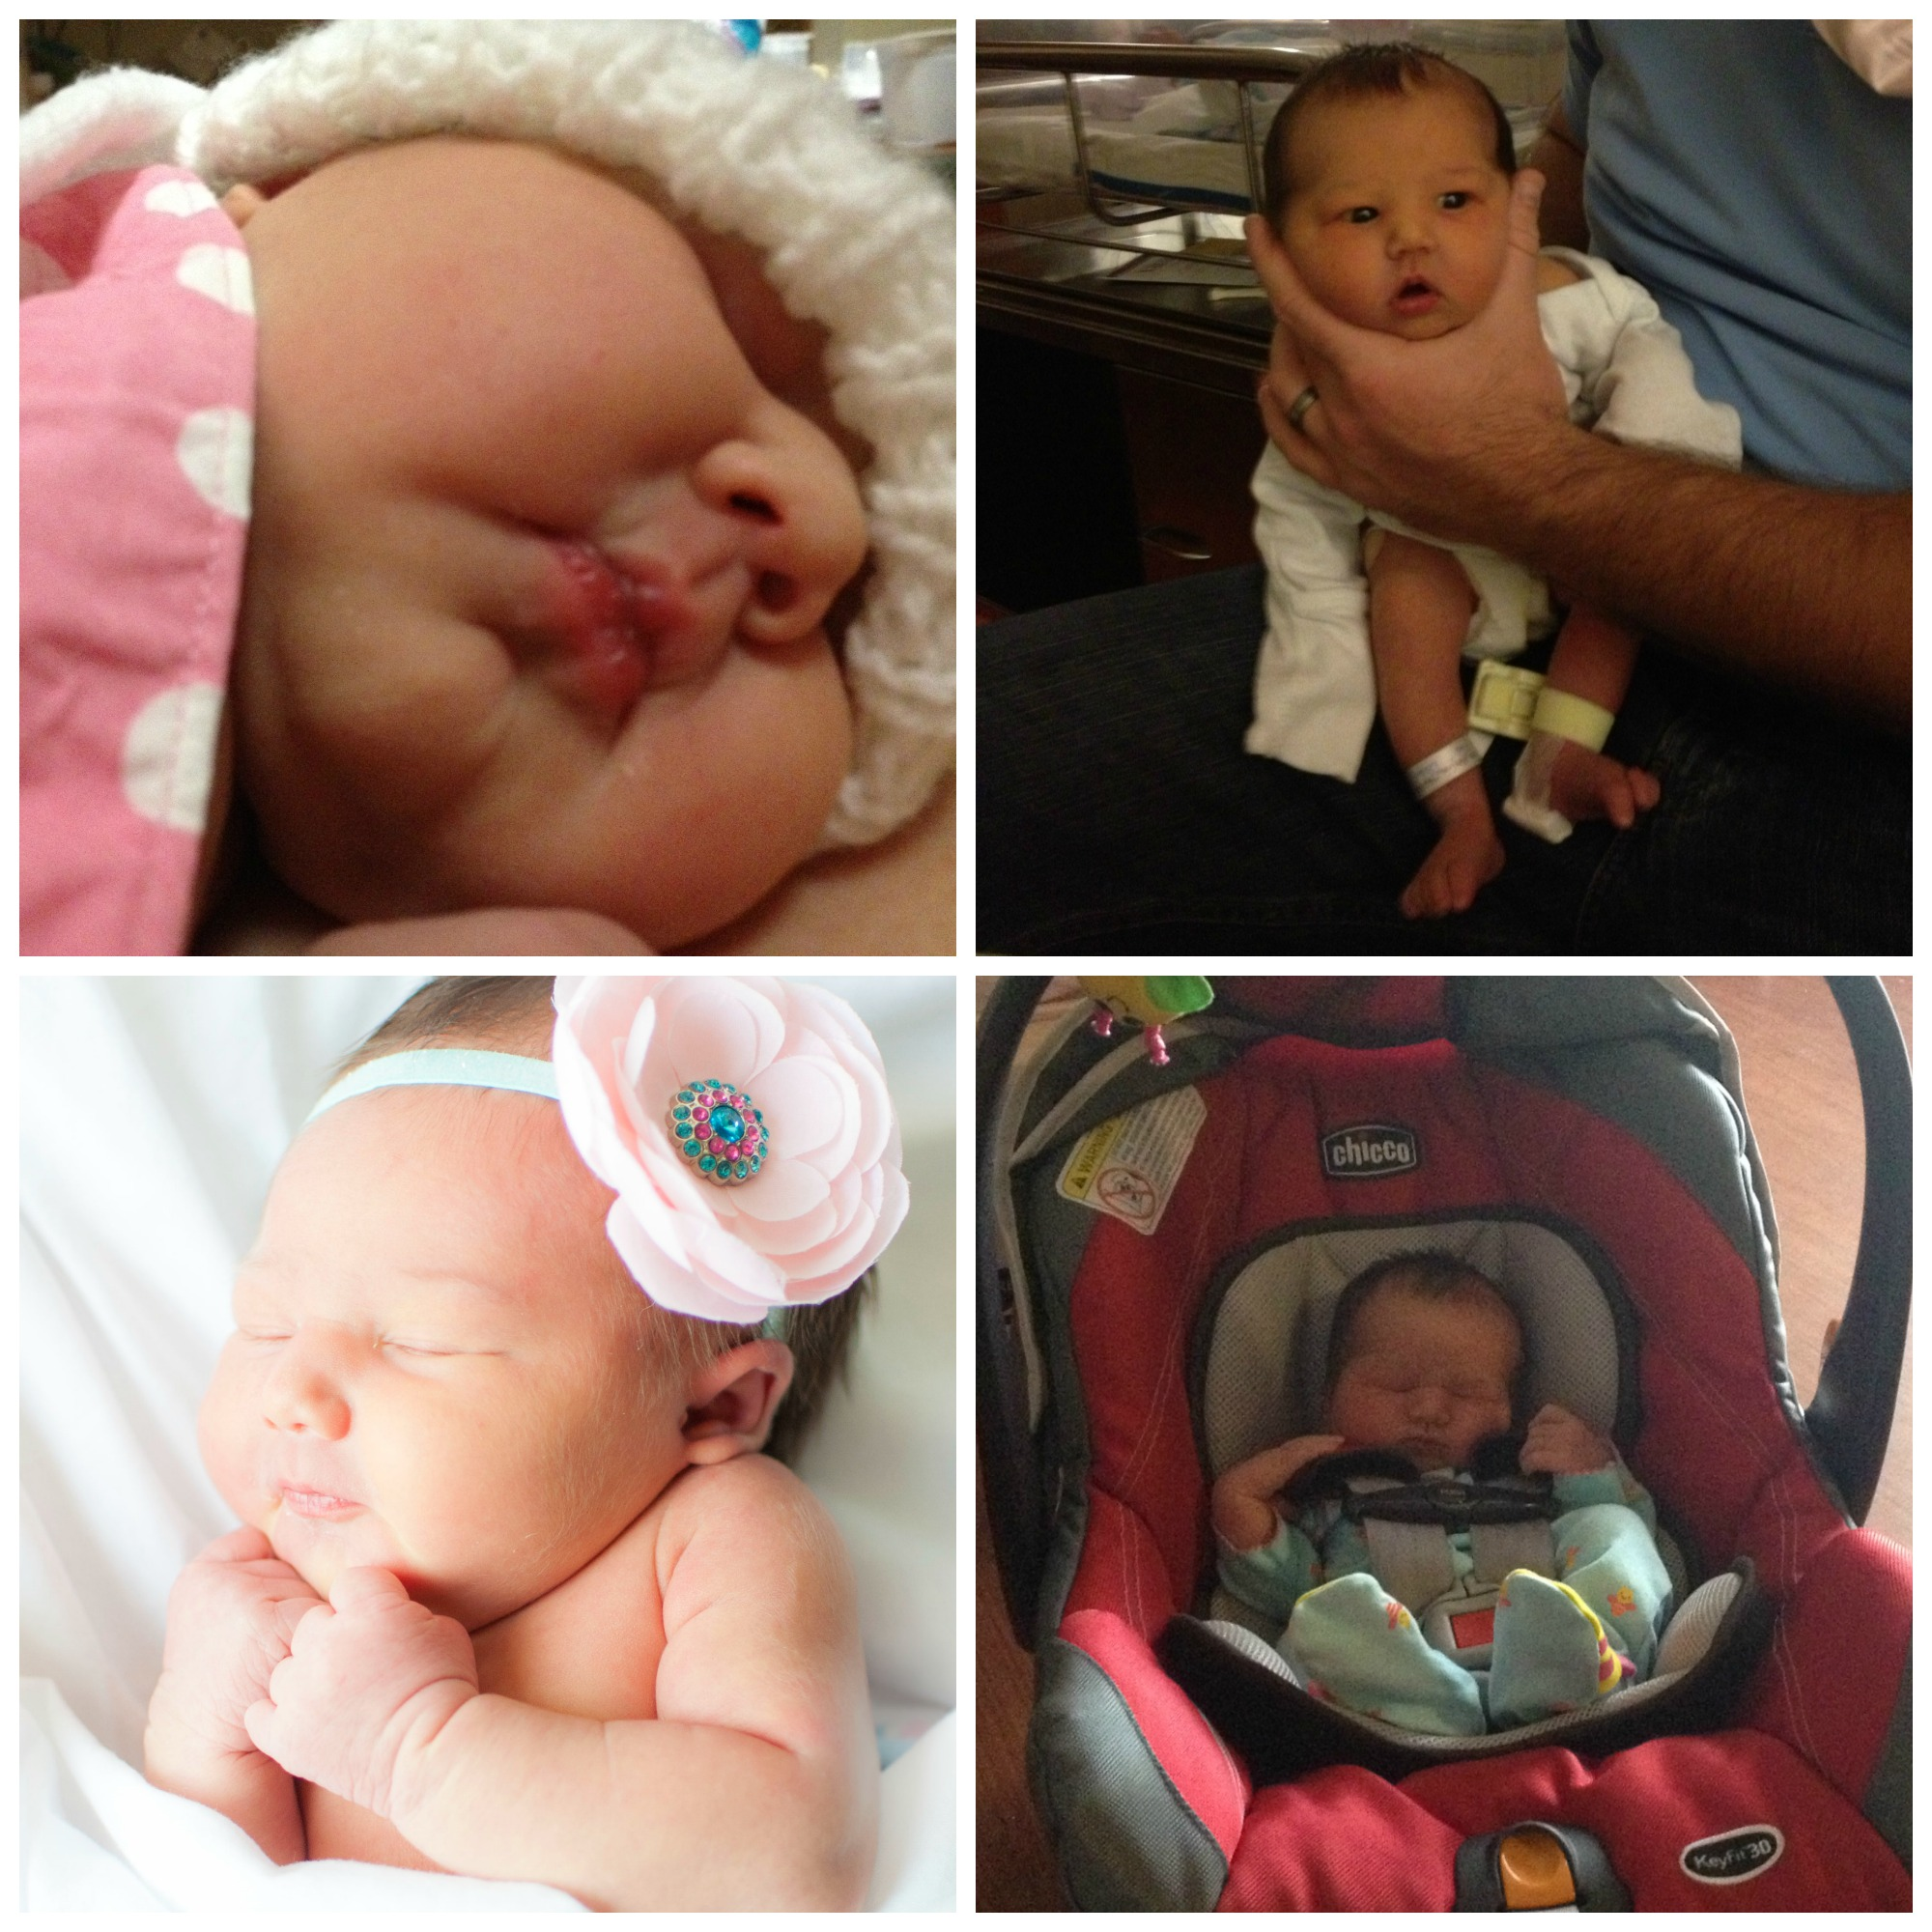 Clockwise from top left: My view of Emmy on the day she was born getting skin-to-skin time under my hospital gown, getting burped by daddy at 2 days old, headed home from the hospital, and at her first in-hospital photoshoot.